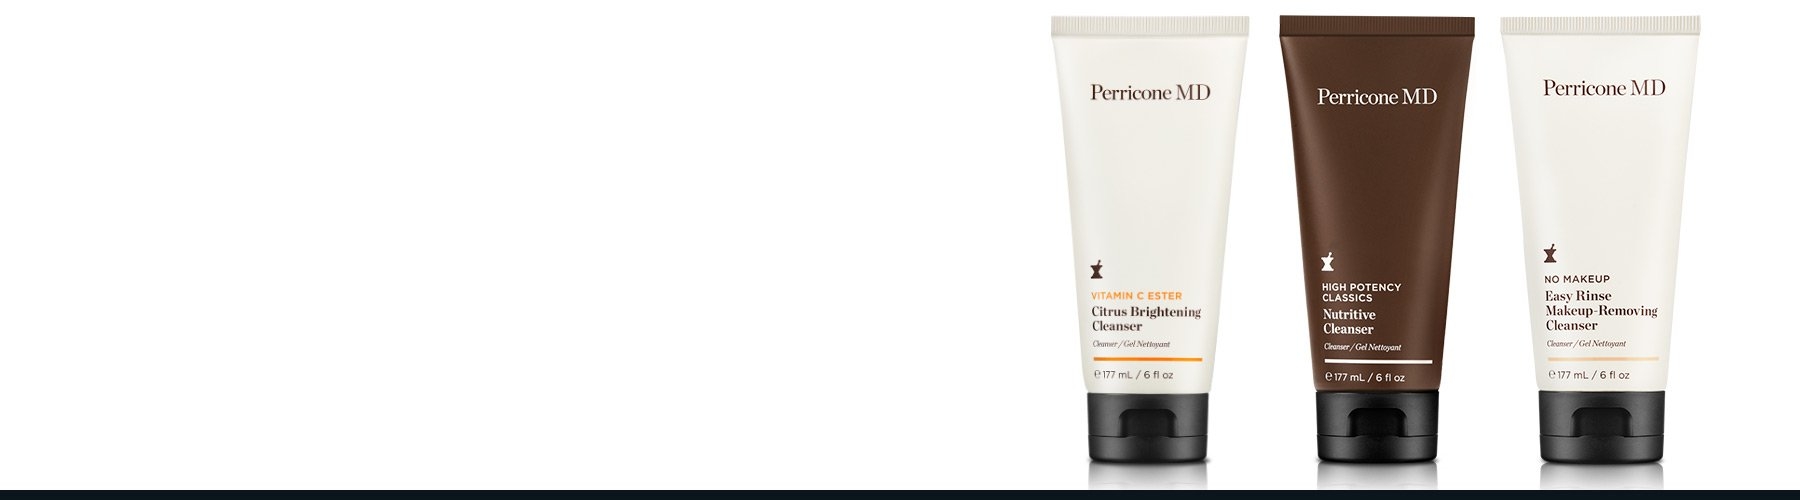 Cleansers Perricone MD